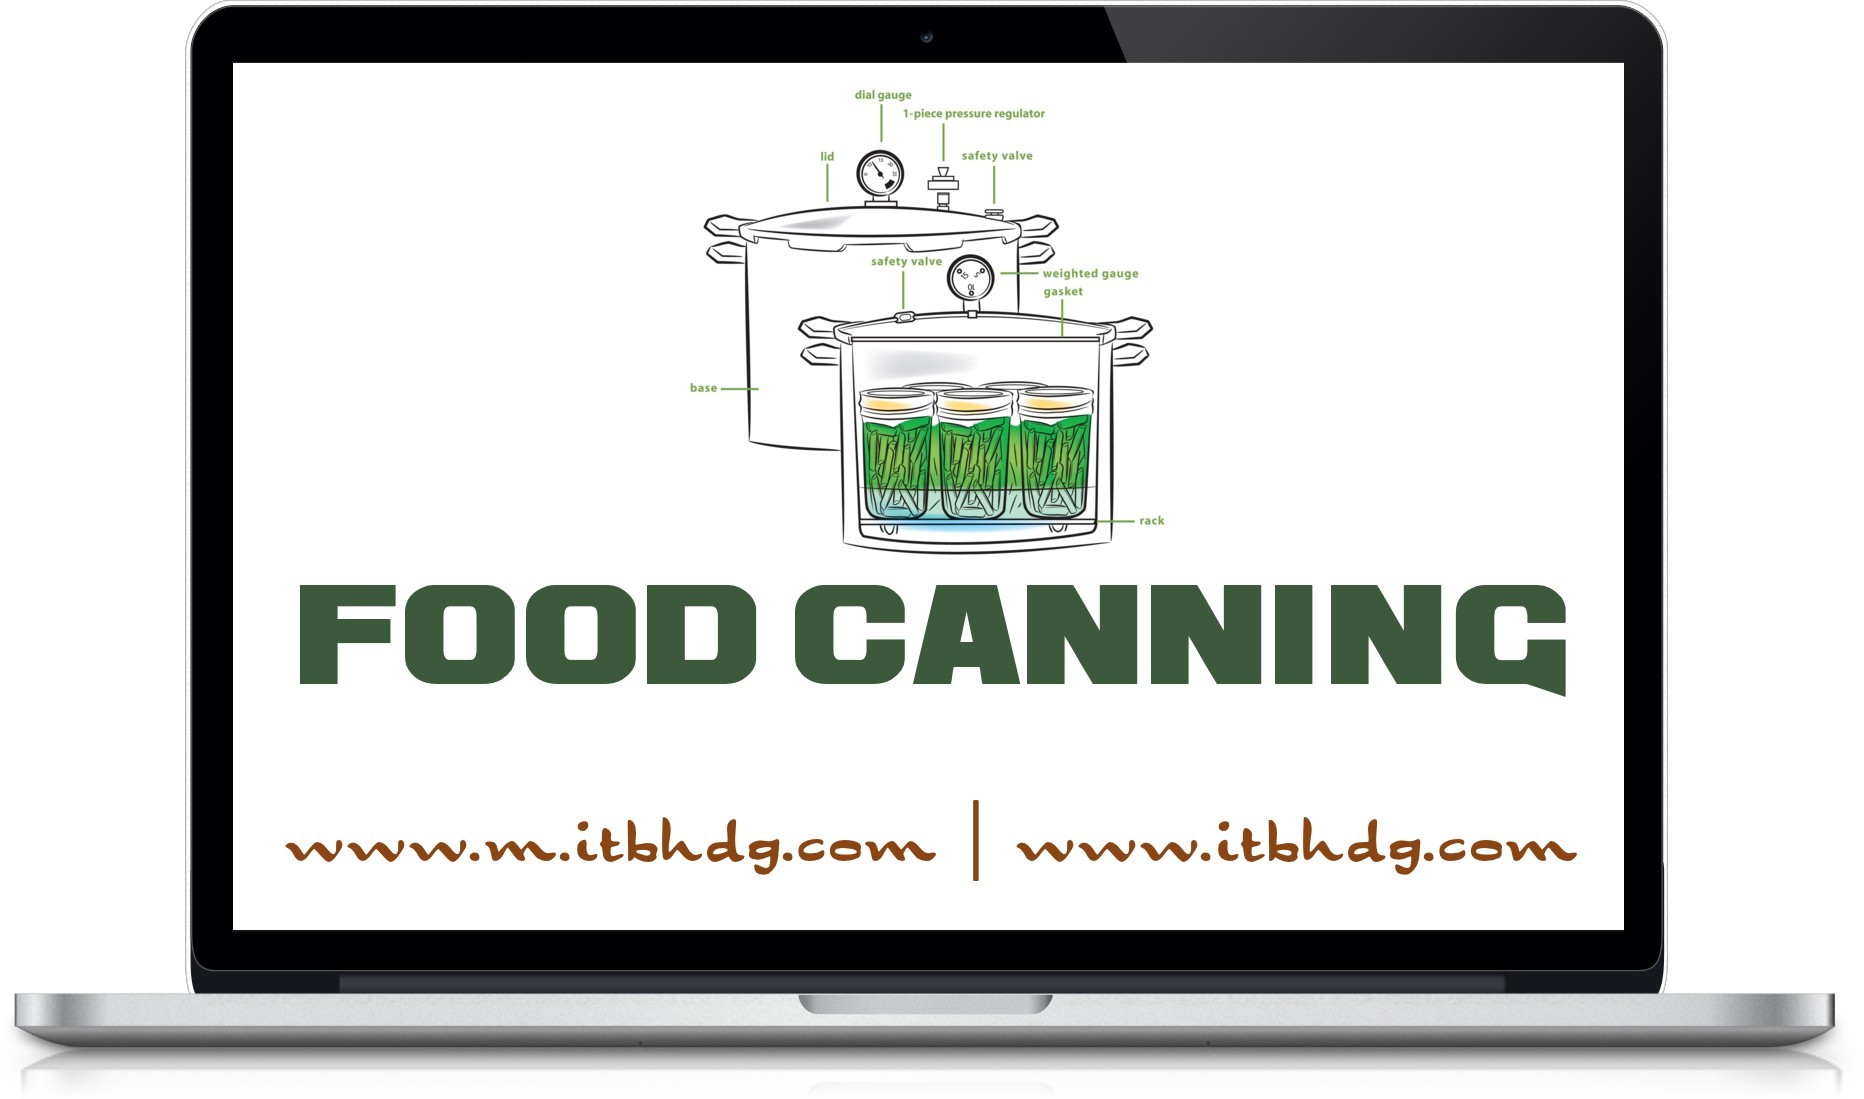 FDA Registration | FOOD CANNING ESTABLISHMENTS | CLICK & SAVE 35% | www.m.itbhdg.com | www.itbhdg.com